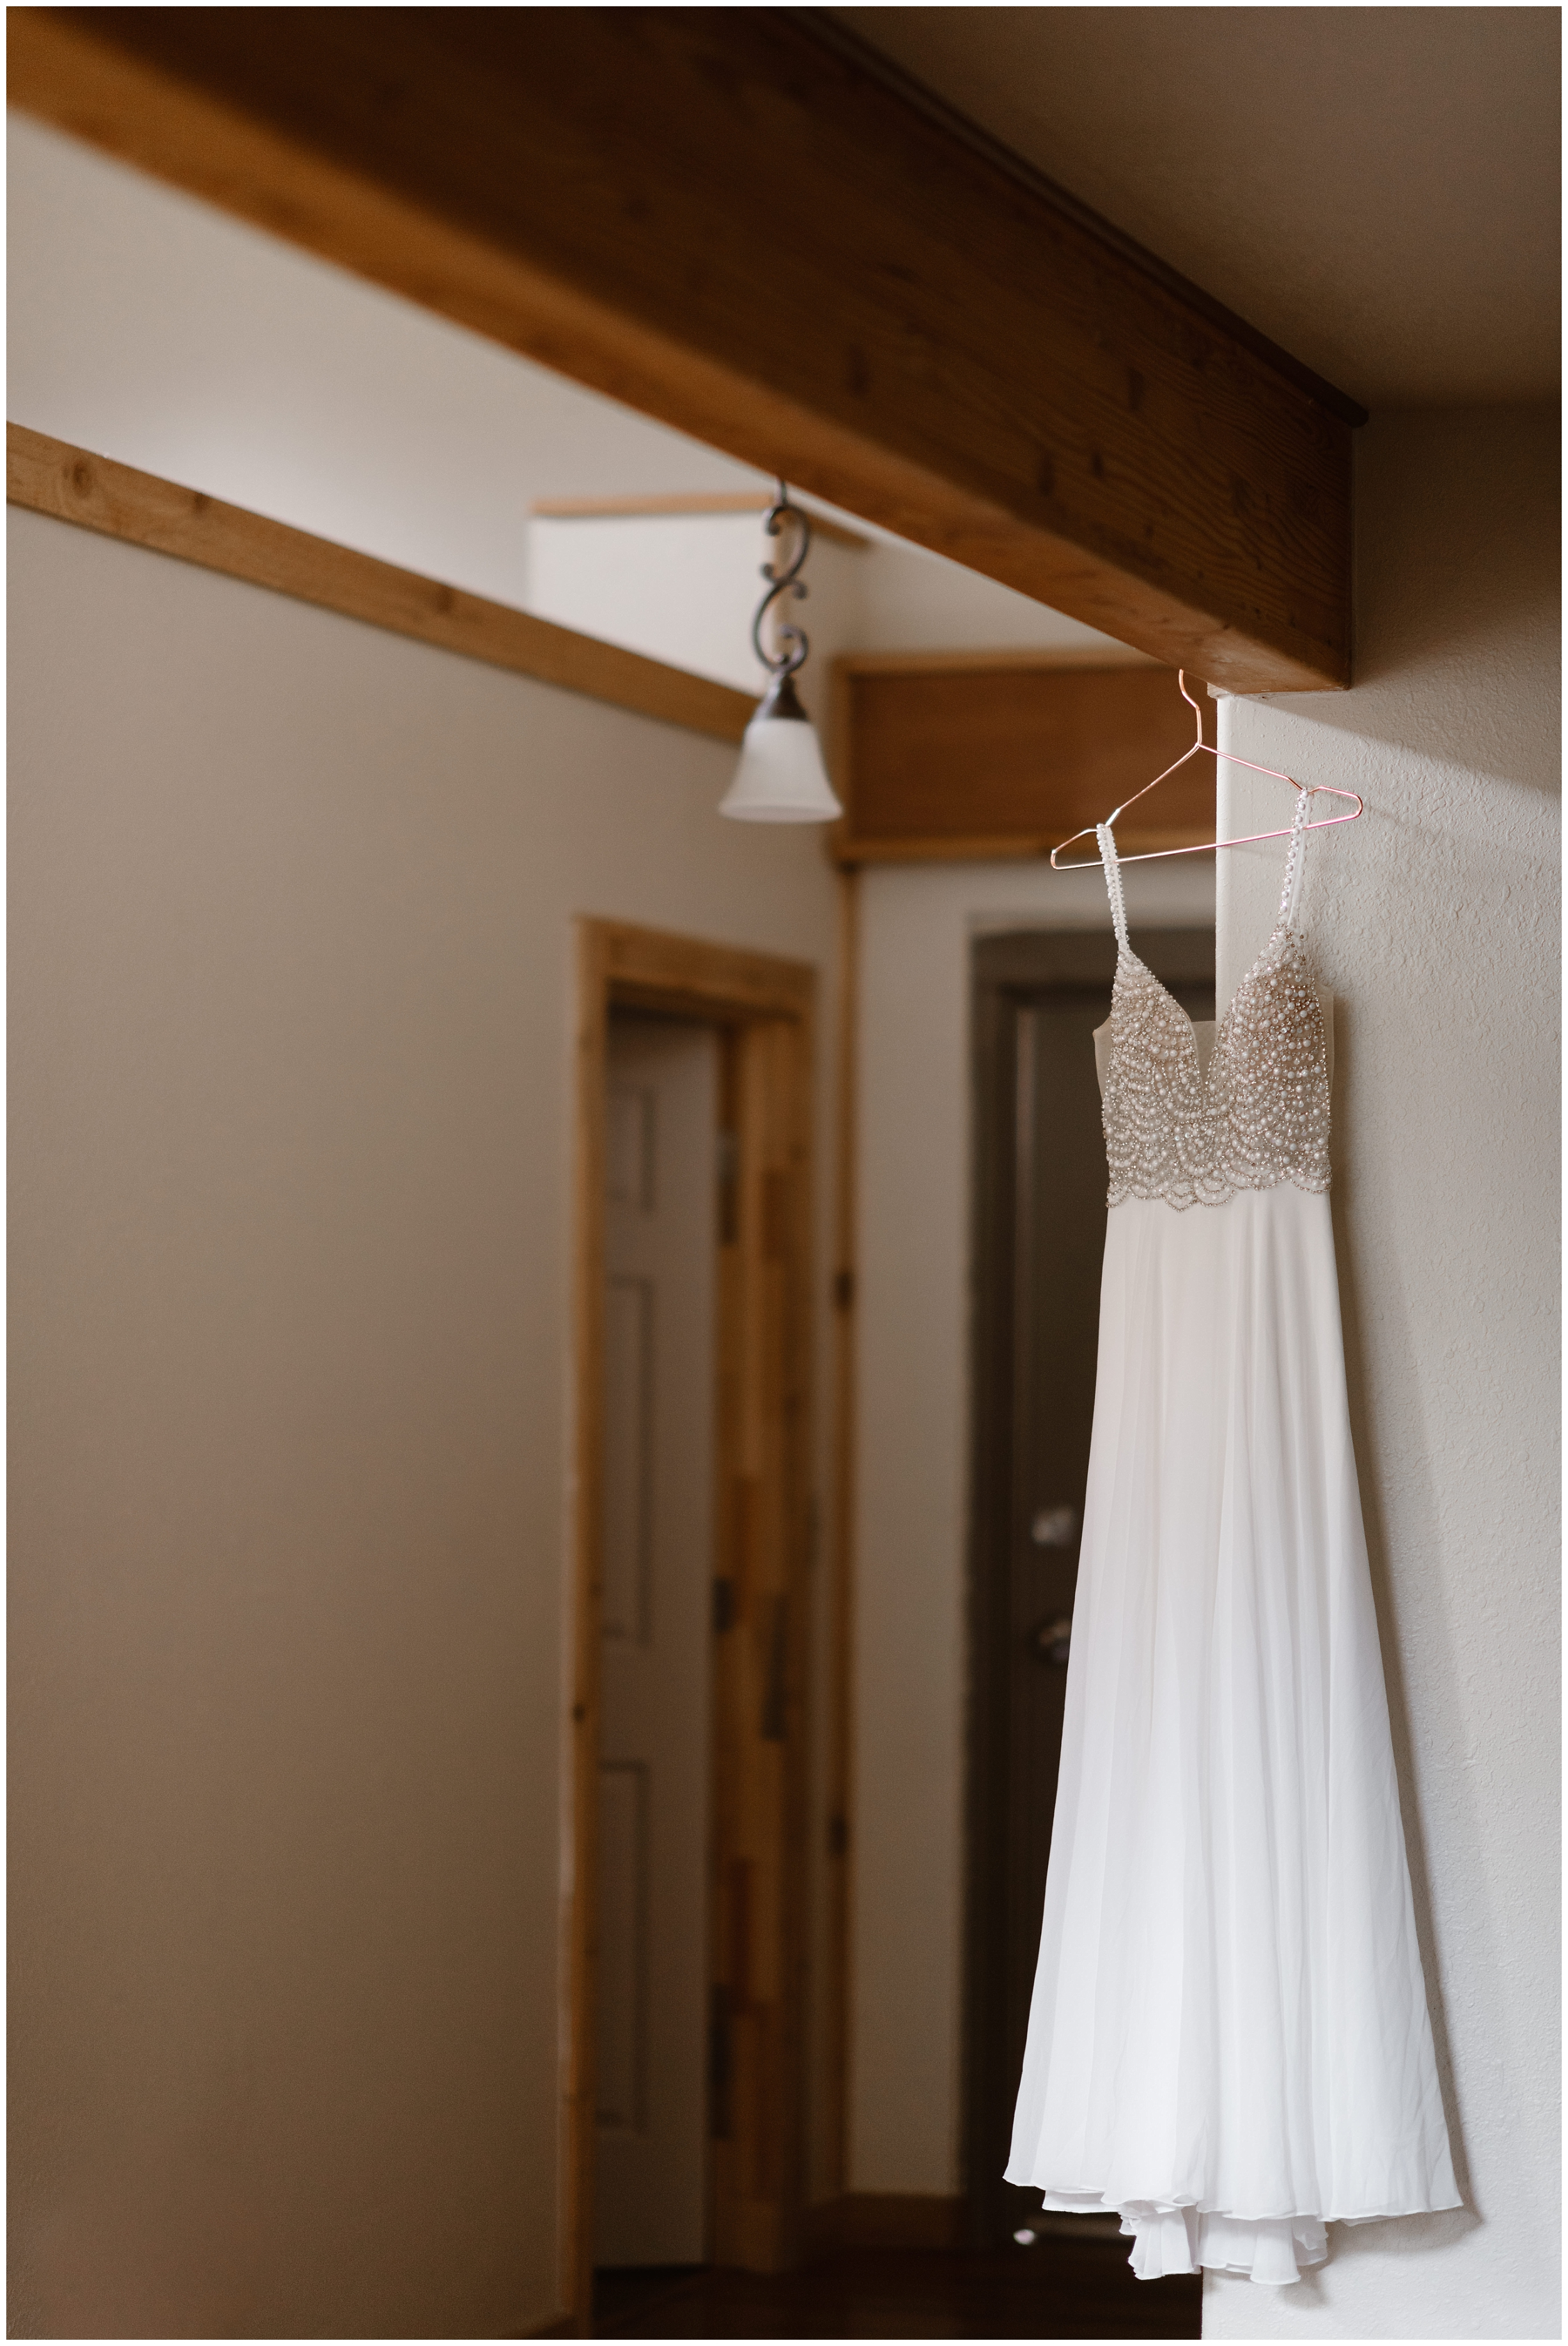 A sleek, white wedding dress hangs from the ceiling in an Ouray, Colorado Airbnb. The dress, white with pearl details on the top of the bodice, hangs from a pink hangar from a wooded rafter. These elopement photos were captured by adventure wedding photographer Adventure Instead.